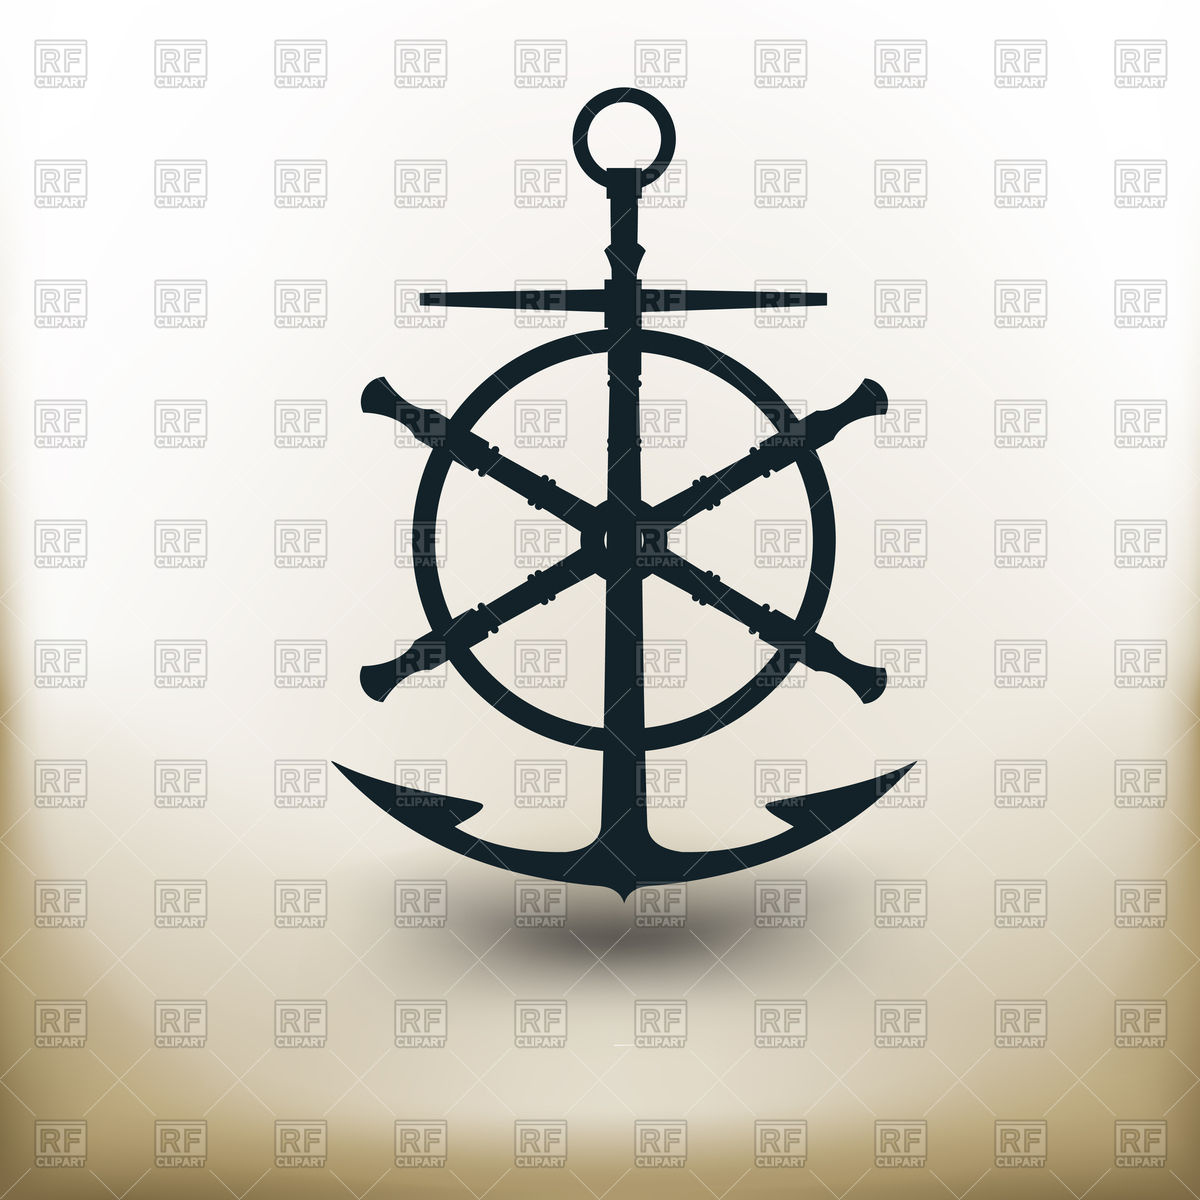 1200x1200 Pictogram Of Ancient Anchor And Steering Wheel Royalty Free Vector